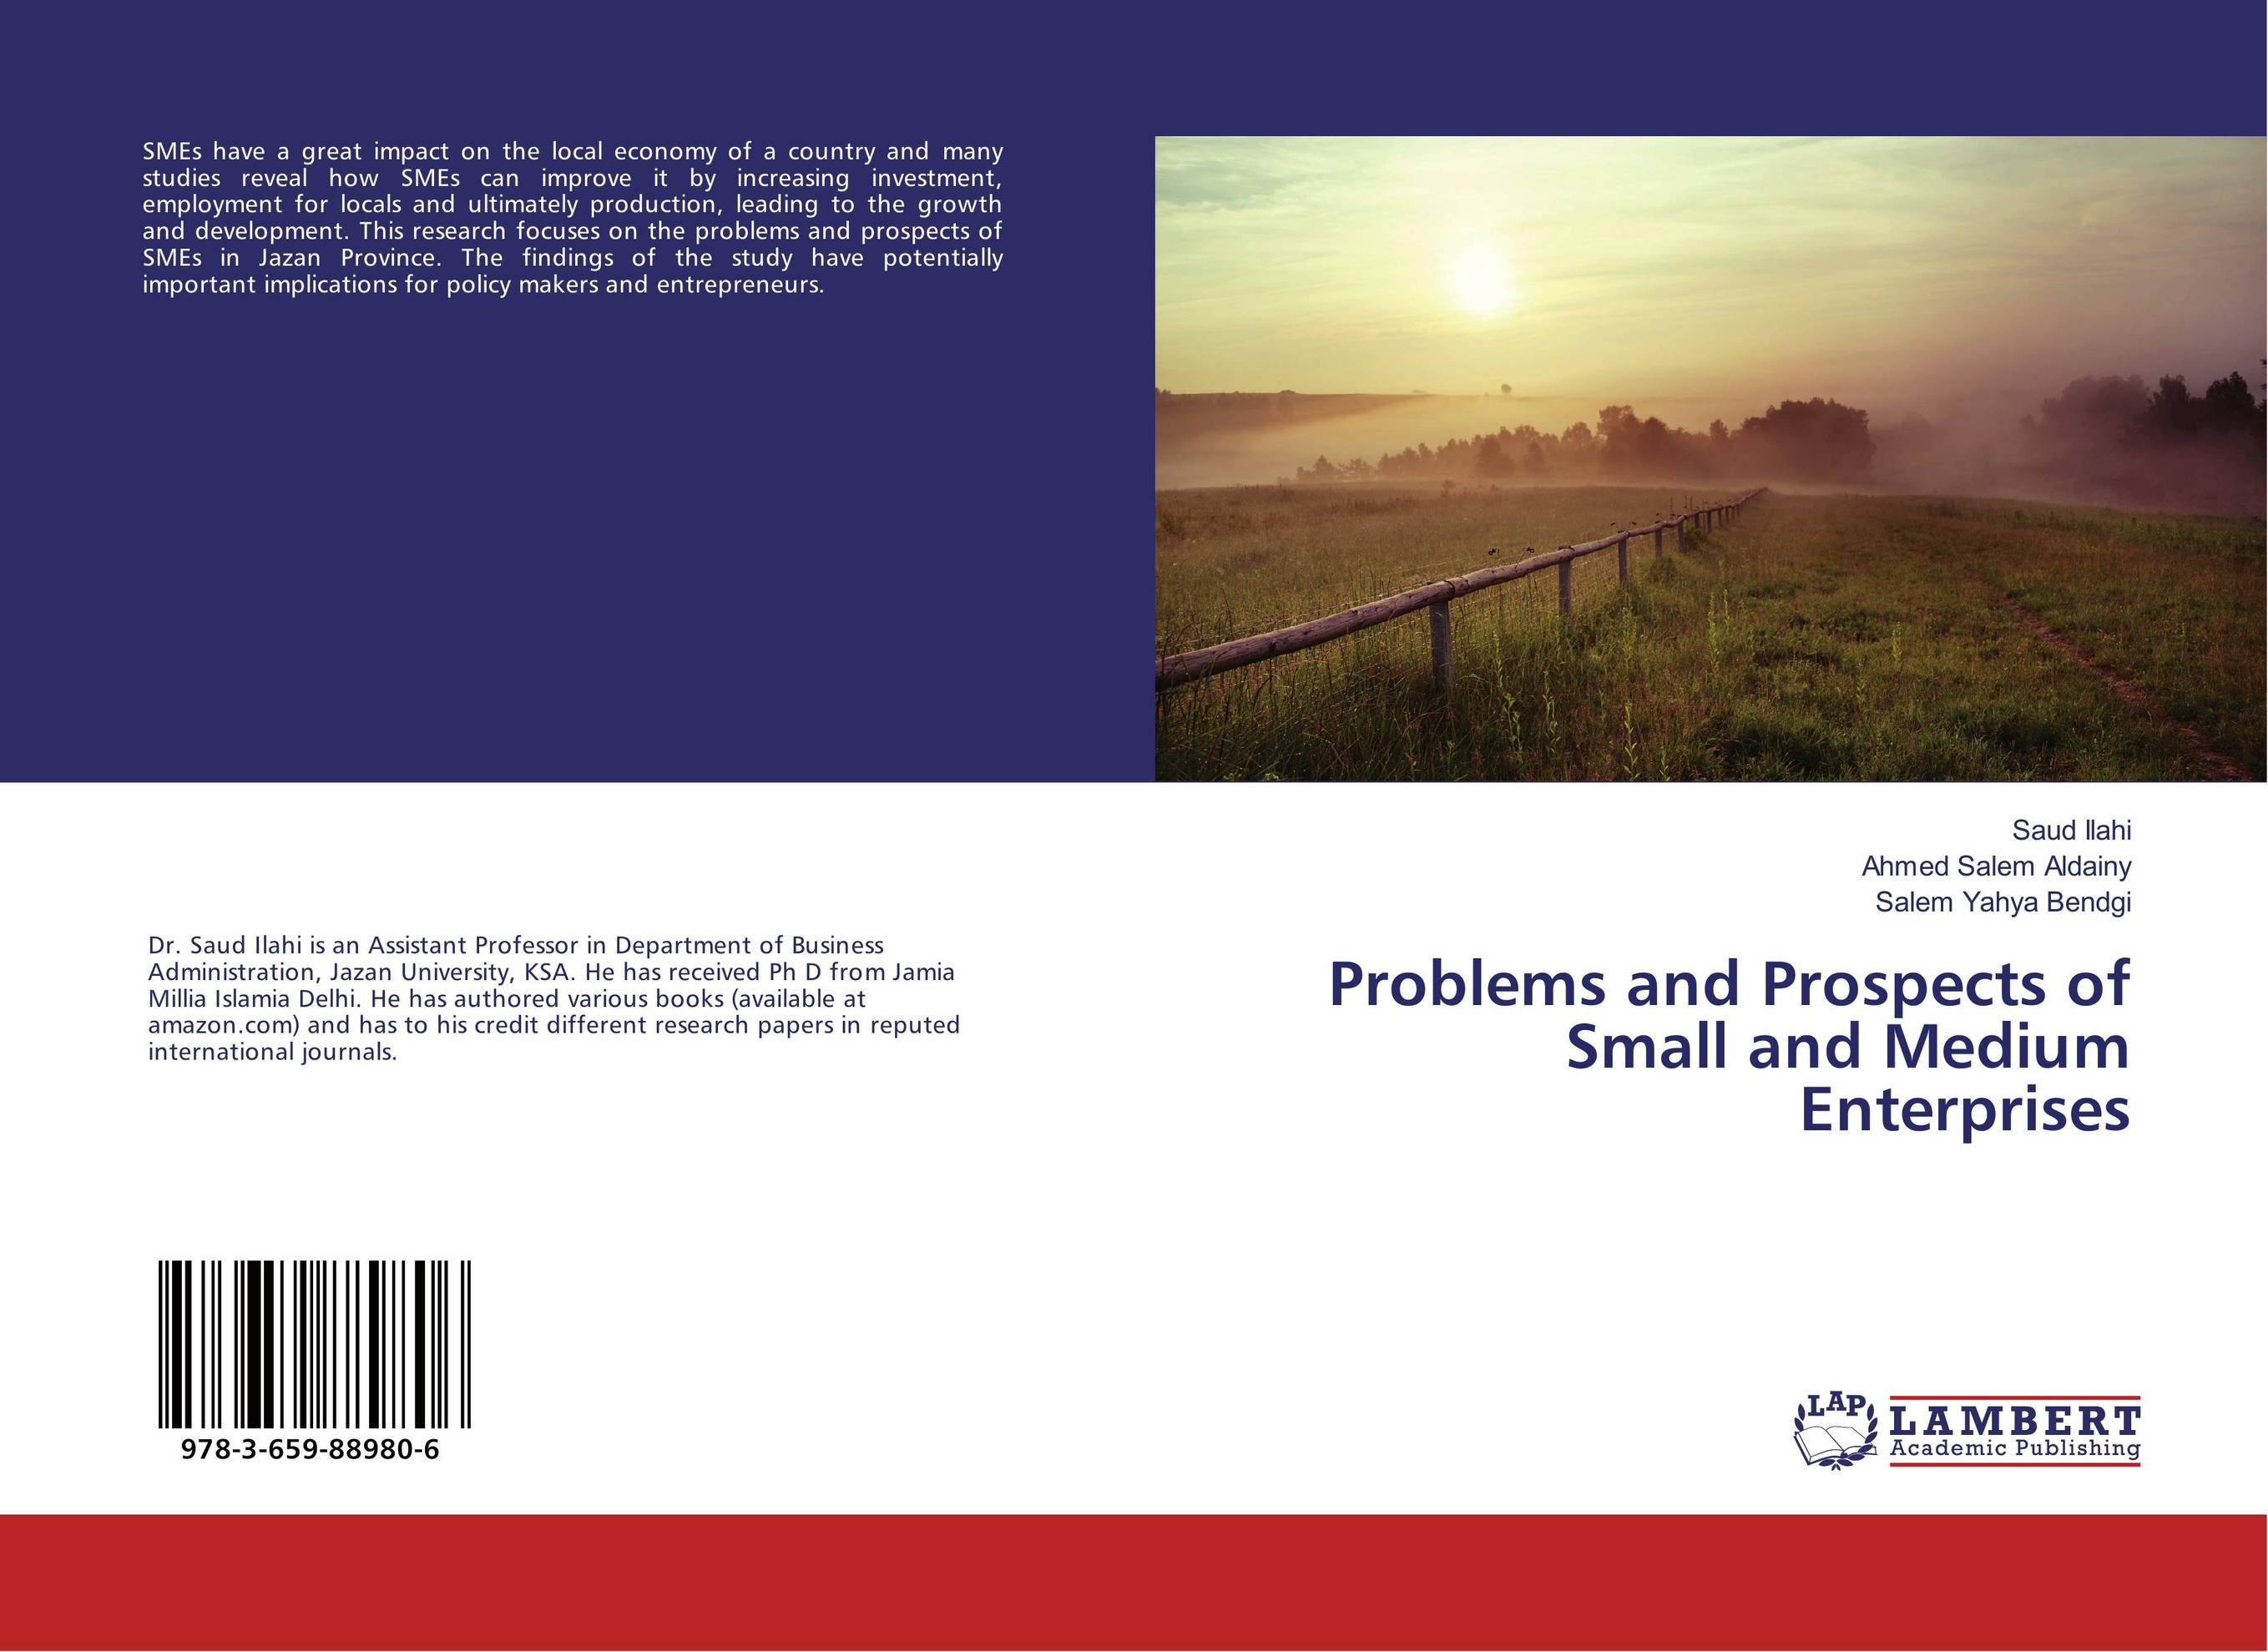 Problems and Prospects of Small and Medium Enterprises